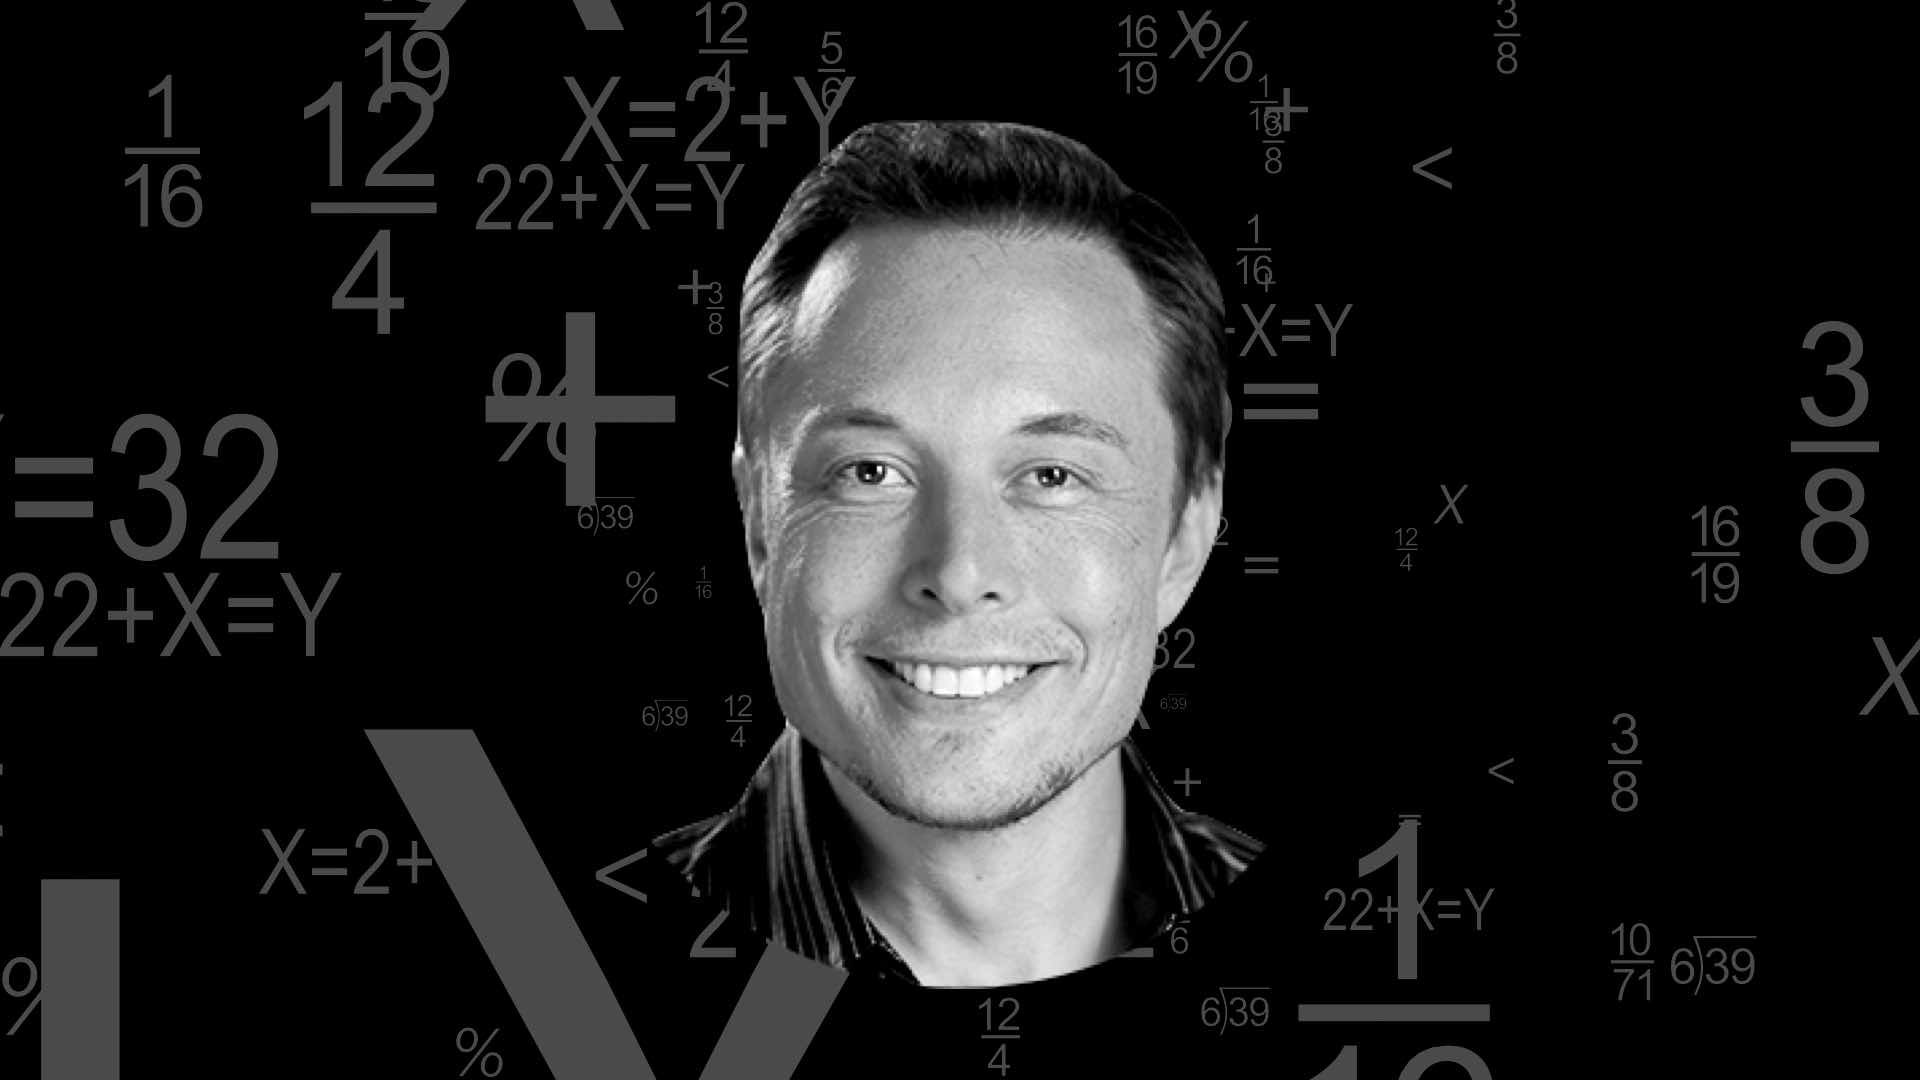 medium.com - Tesloop - Elon Musk Poised to Declare Victory over the Legacy Automotive Industry at Tesla Autonomy Day